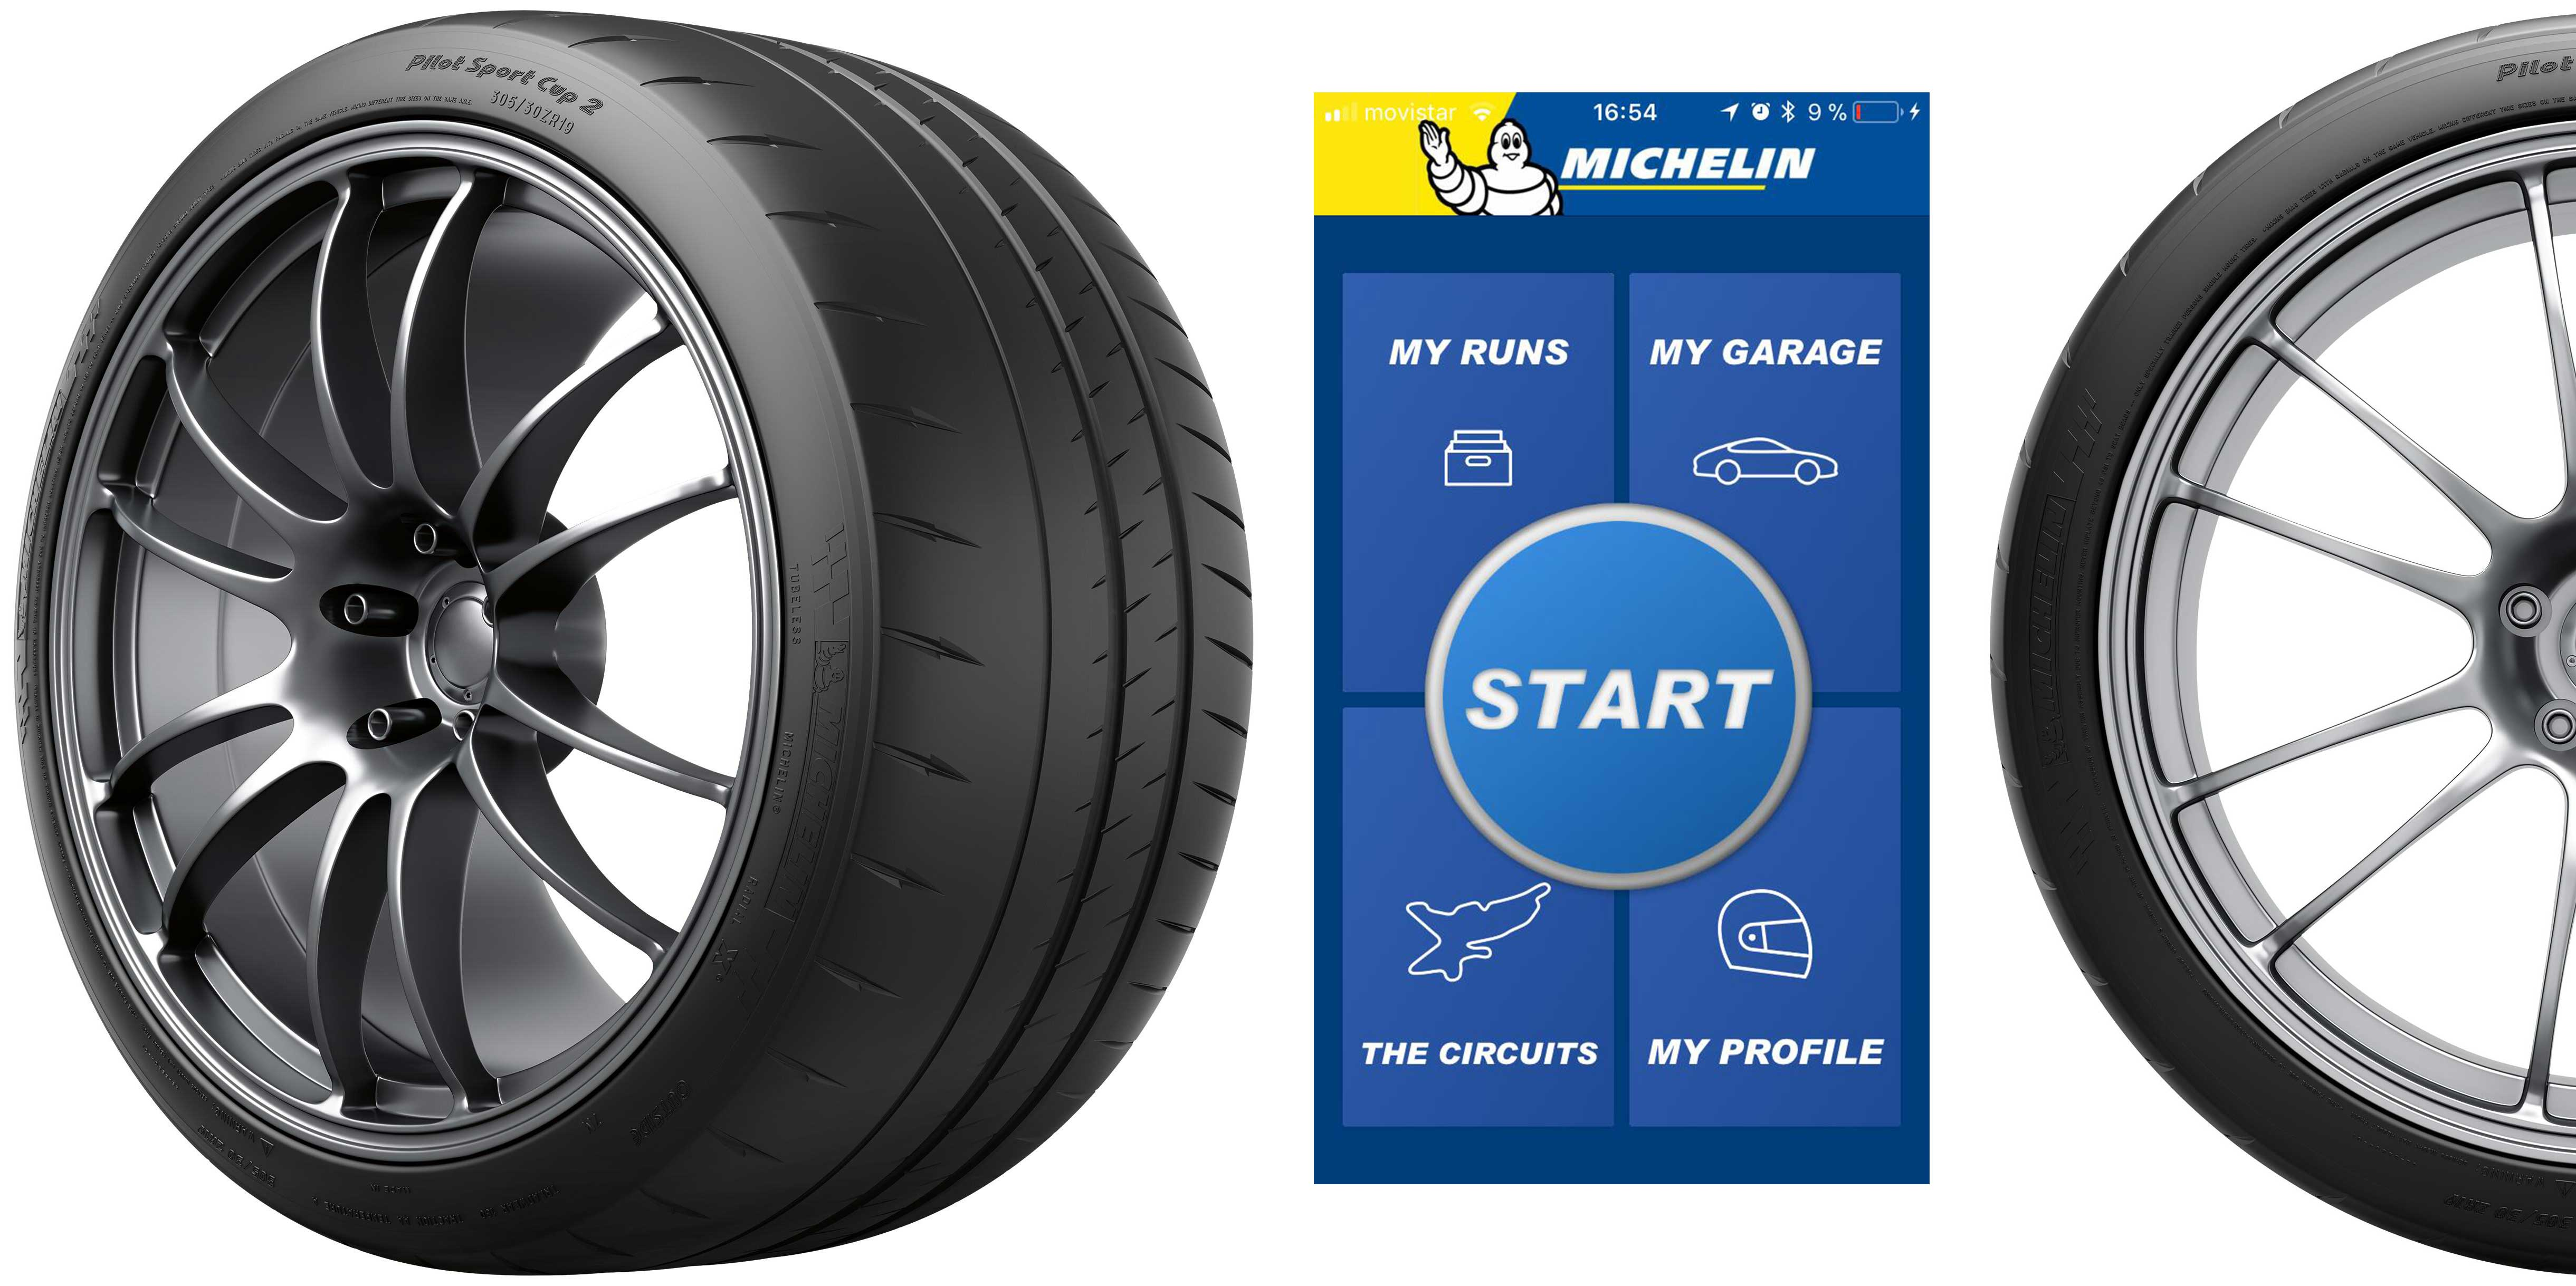 Michelin brings on-track performance and data to the Middle East with new smartphone app and advanced range of next-gen tyres